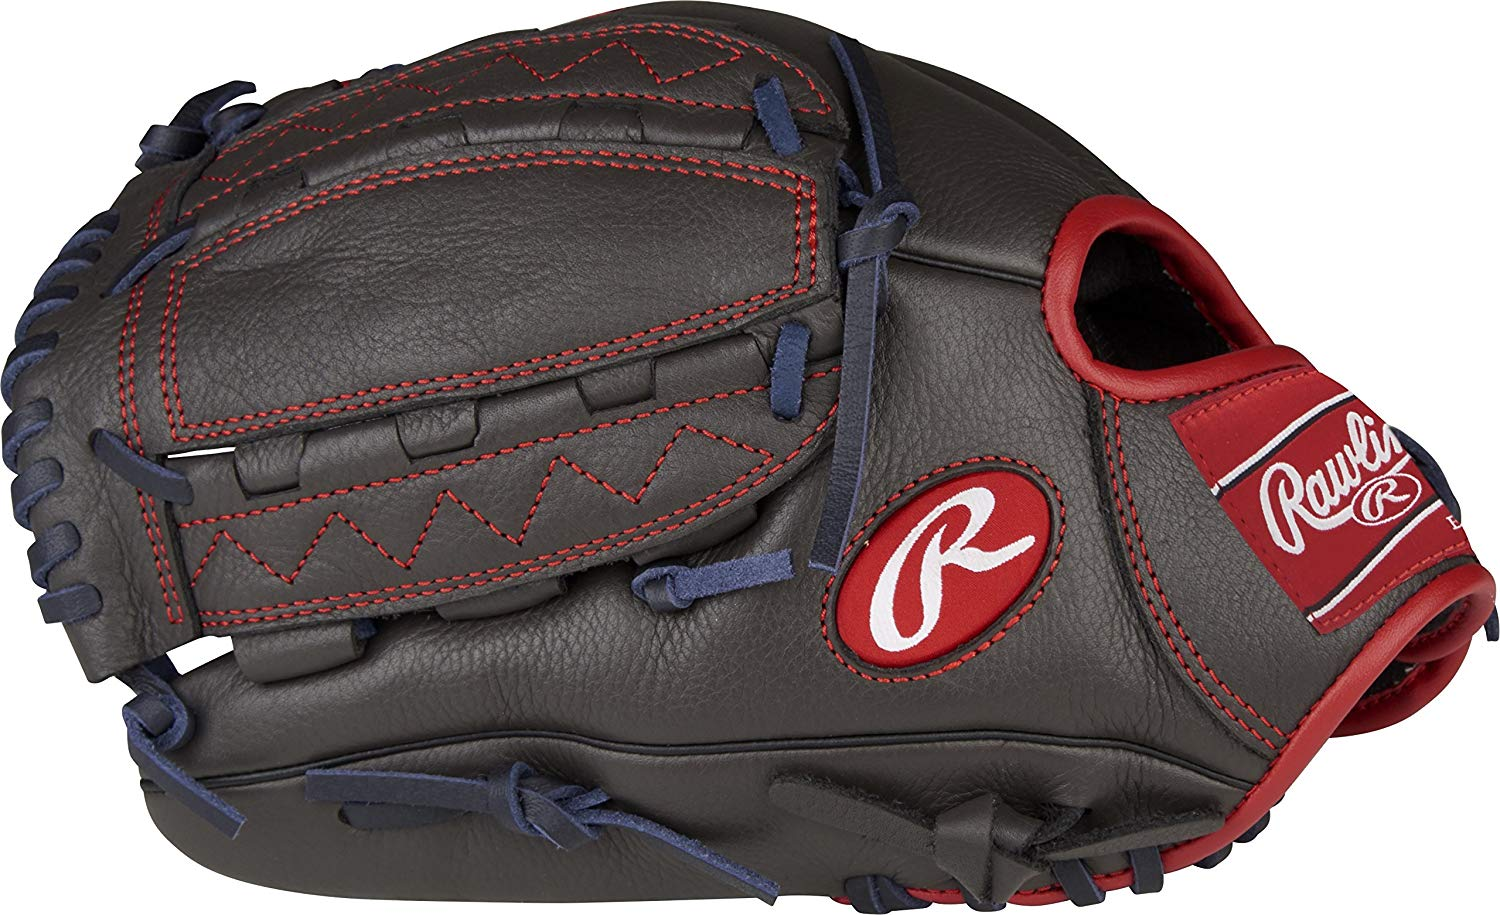 rawlings-select-pro-lite-youth-baseball-glove-11-75-left-hand-throw SPL175DP-LeftHandThrow Rawlings 083321376269 11-3/4-inch all-leather youth baseball glove styled after the one used by